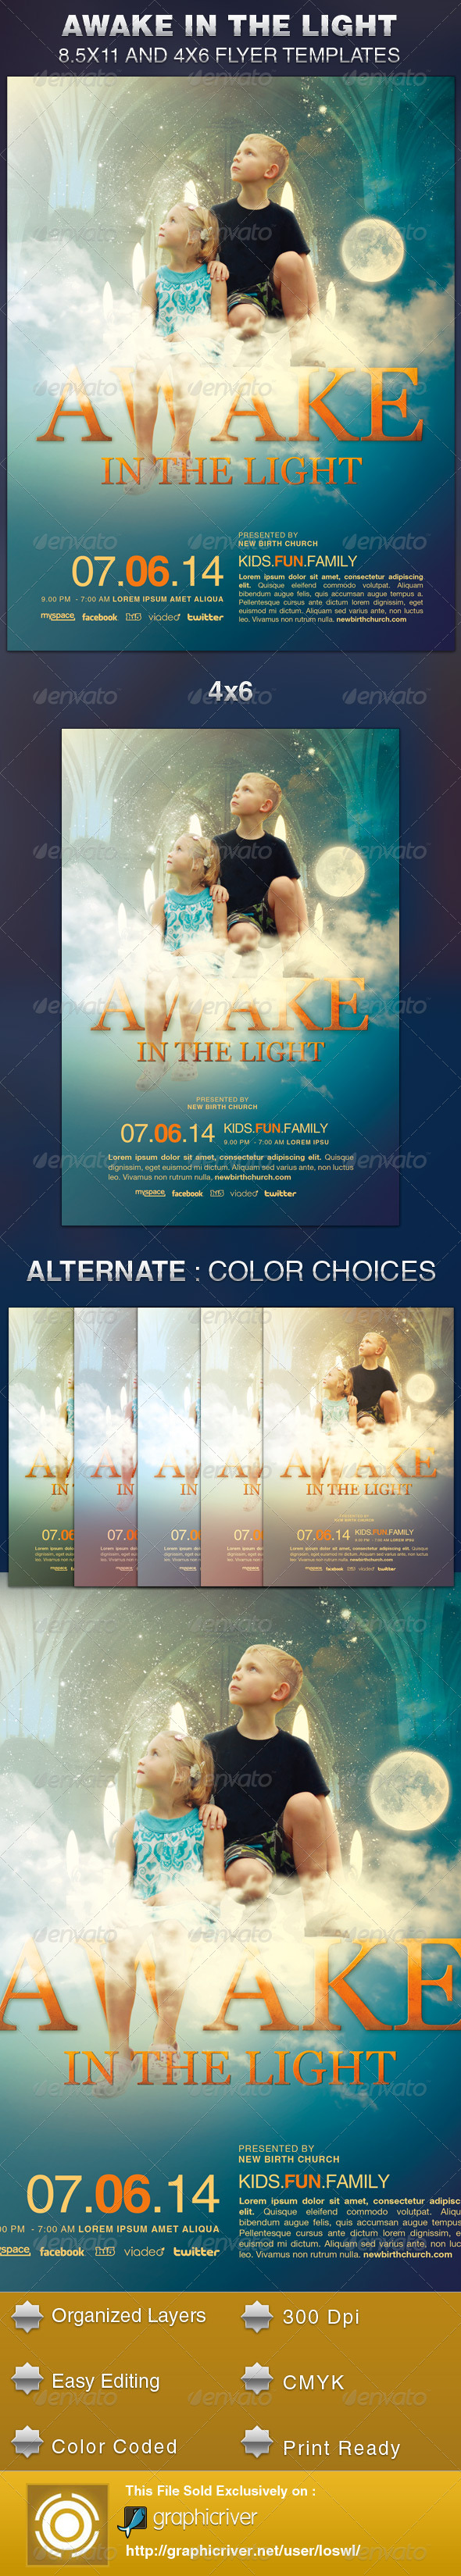 Awake in the Light Church Flyer Template - Church Flyers